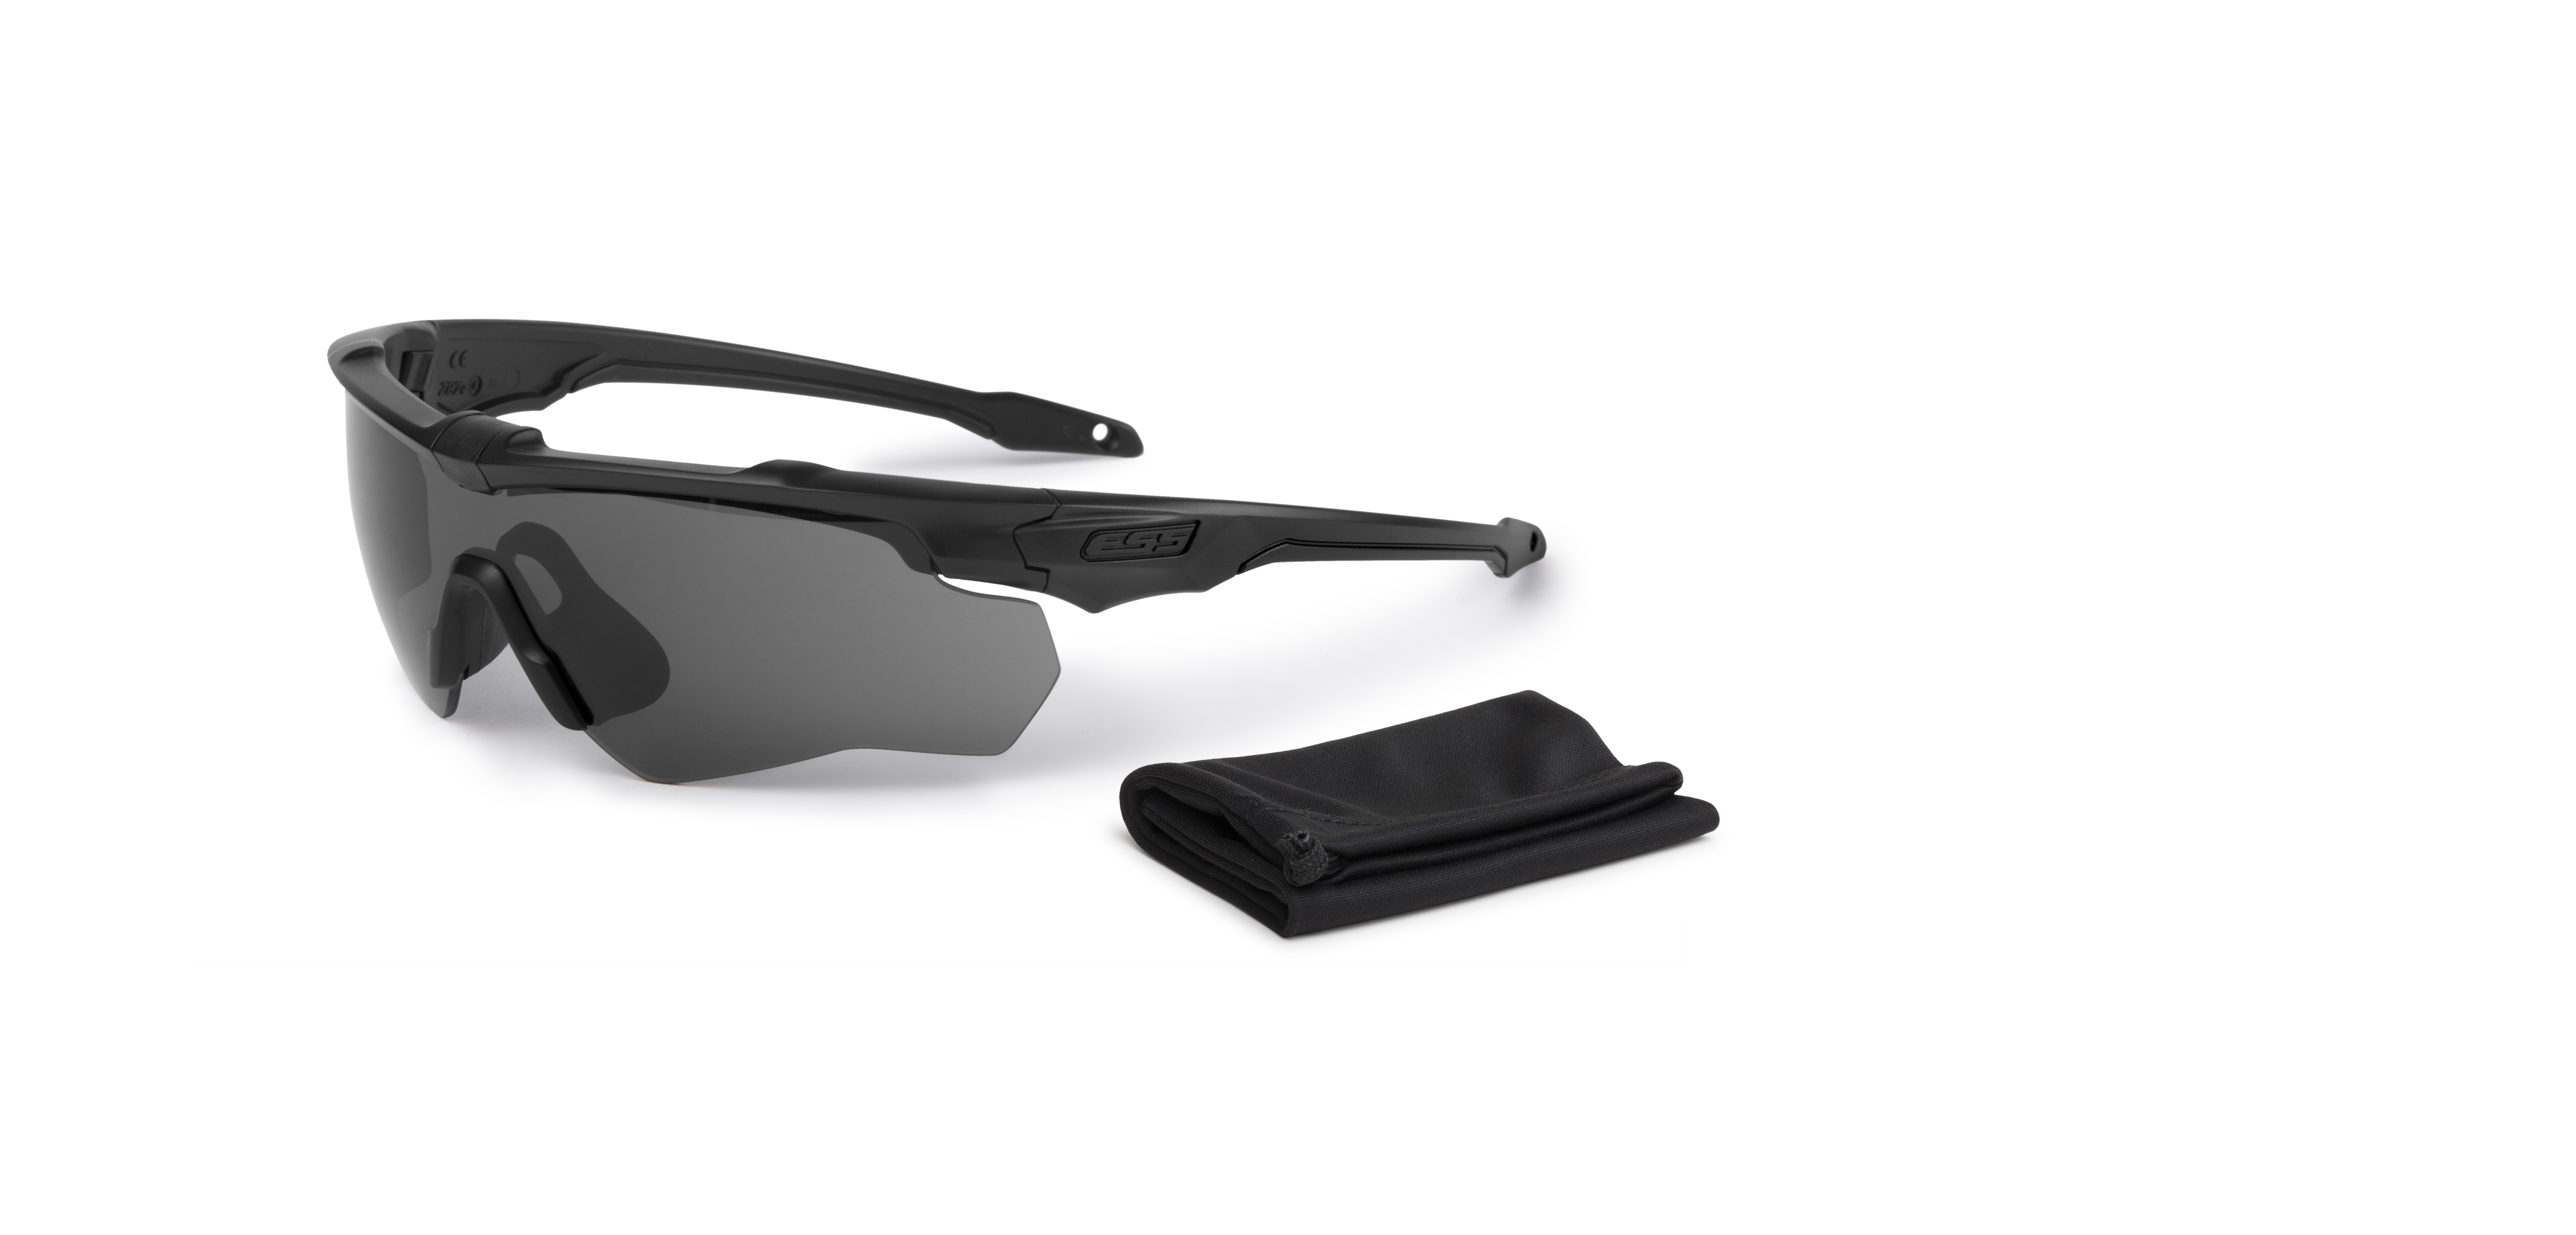 8d1bbb0679 ESS Crossblade ONE Shooting Glasses